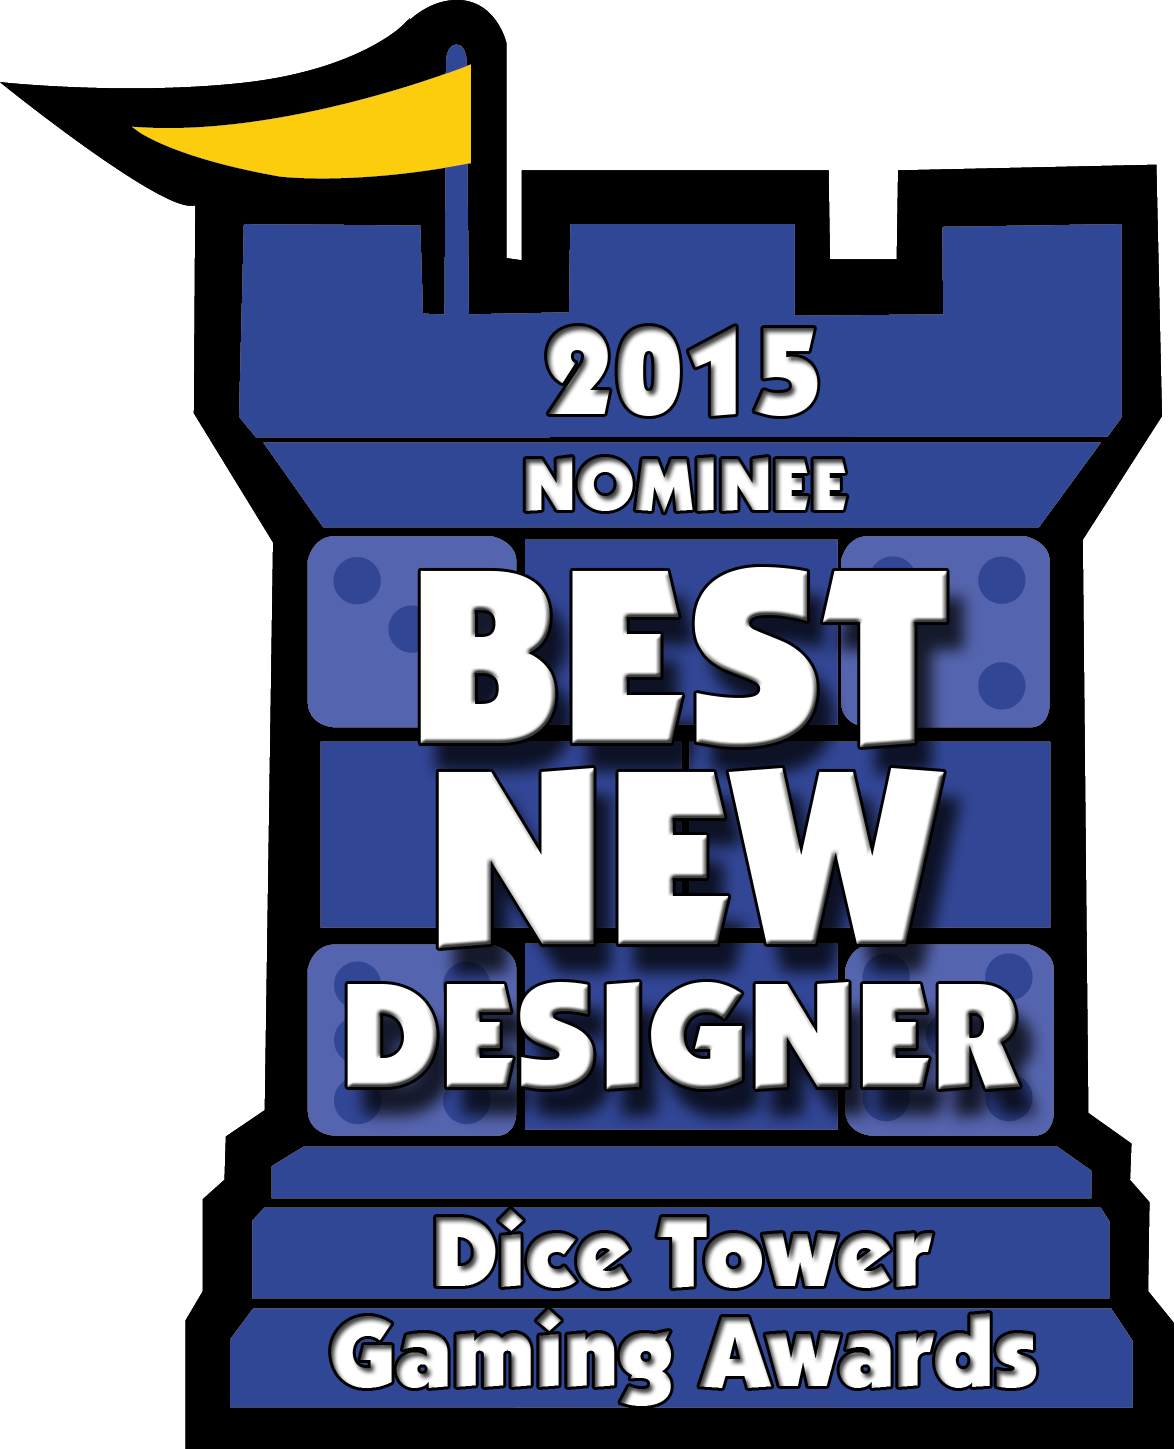 2015 Designer Nominee